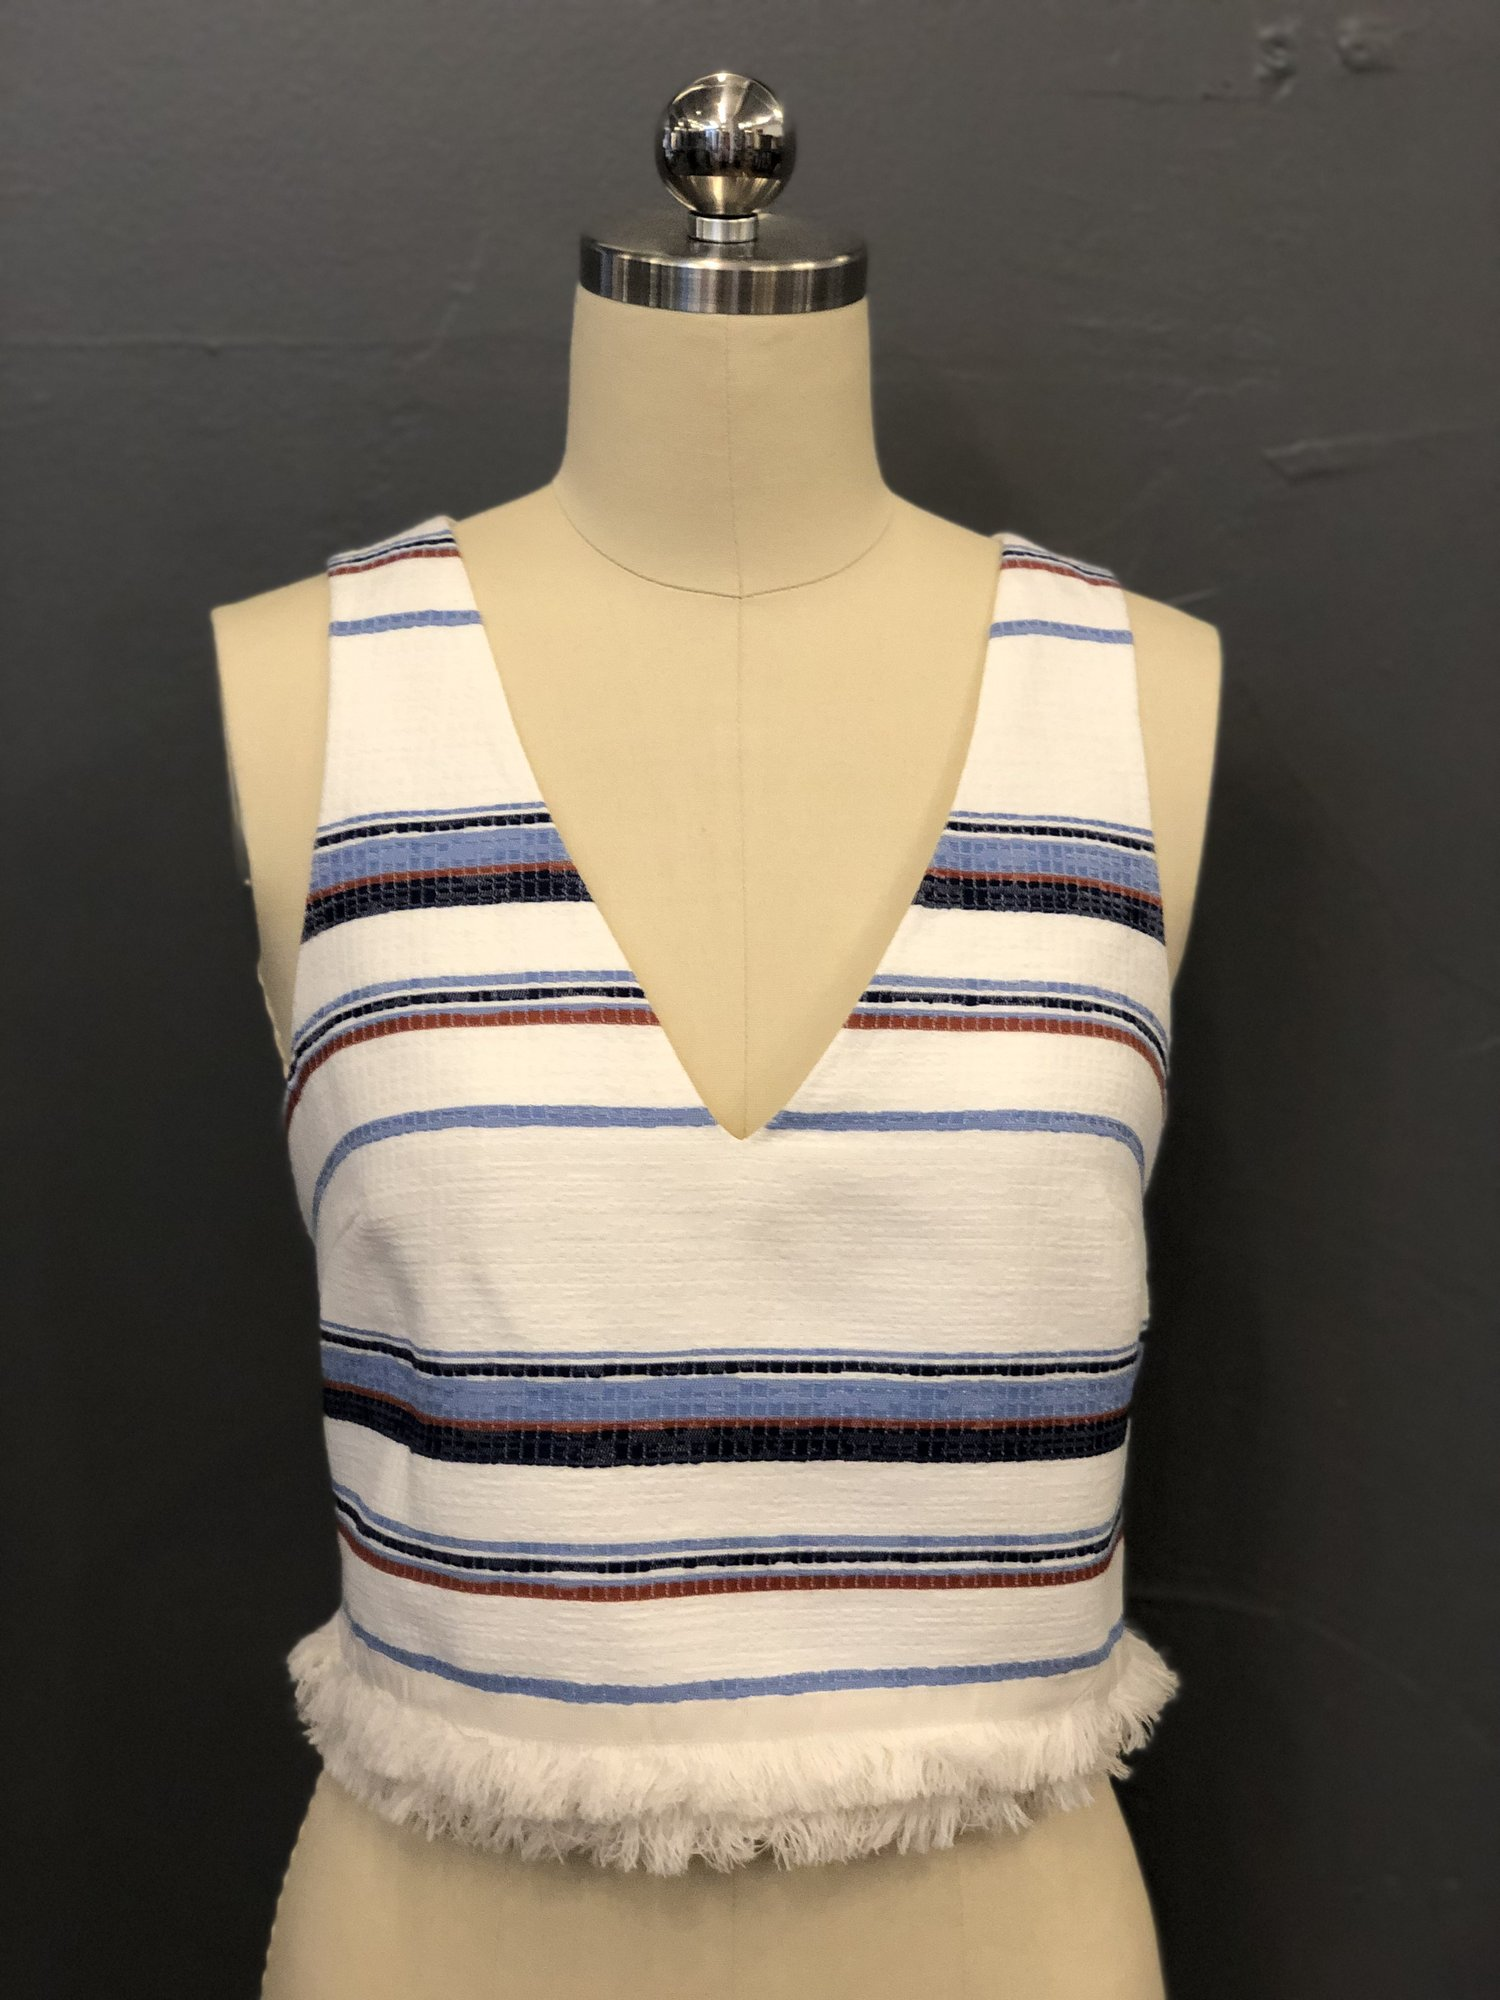 Intermix Stripe Crop Tank, Wht.Blu, Size: P<br /> <br /> 68% Acrylic, 19% Polyester, 13% Cotton<br /> 100% Polyester lining<br /> <br /> New With Tags<br /> Original Retail: $235